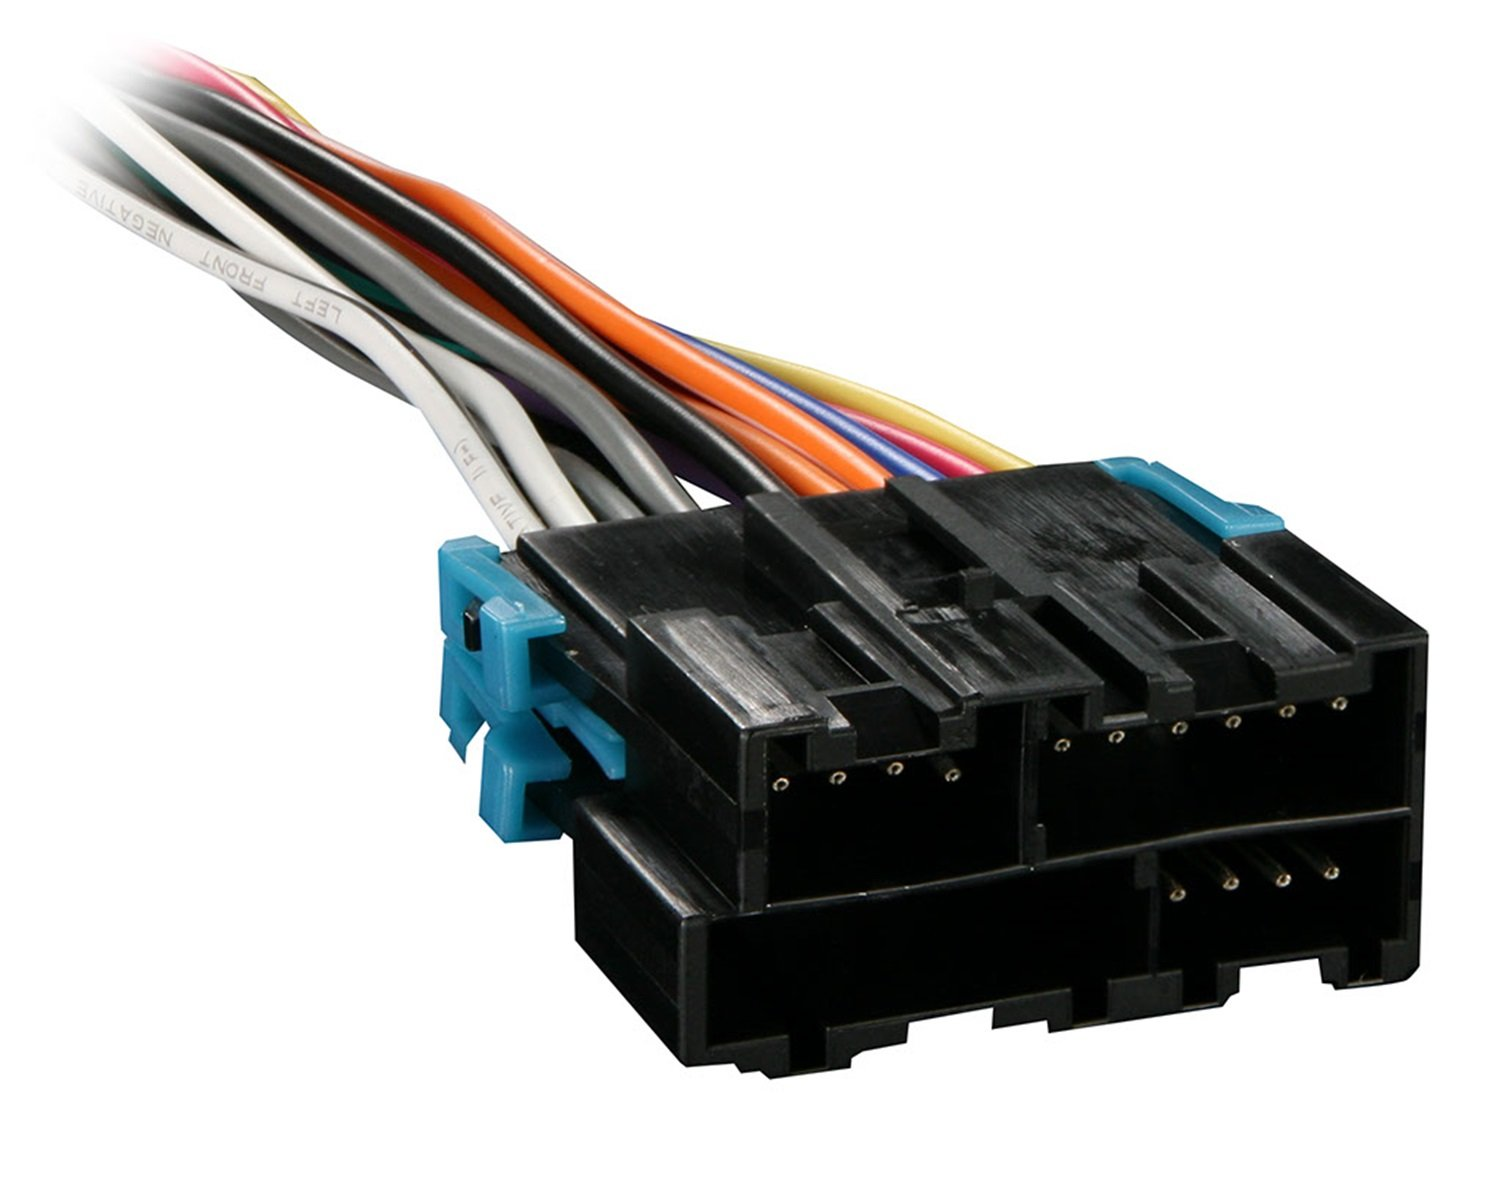 61 CwjZt1hL._SL1500_ radio wiring harnesses amazon com Pioneer Deh P77DH Wiring Harness at mifinder.co